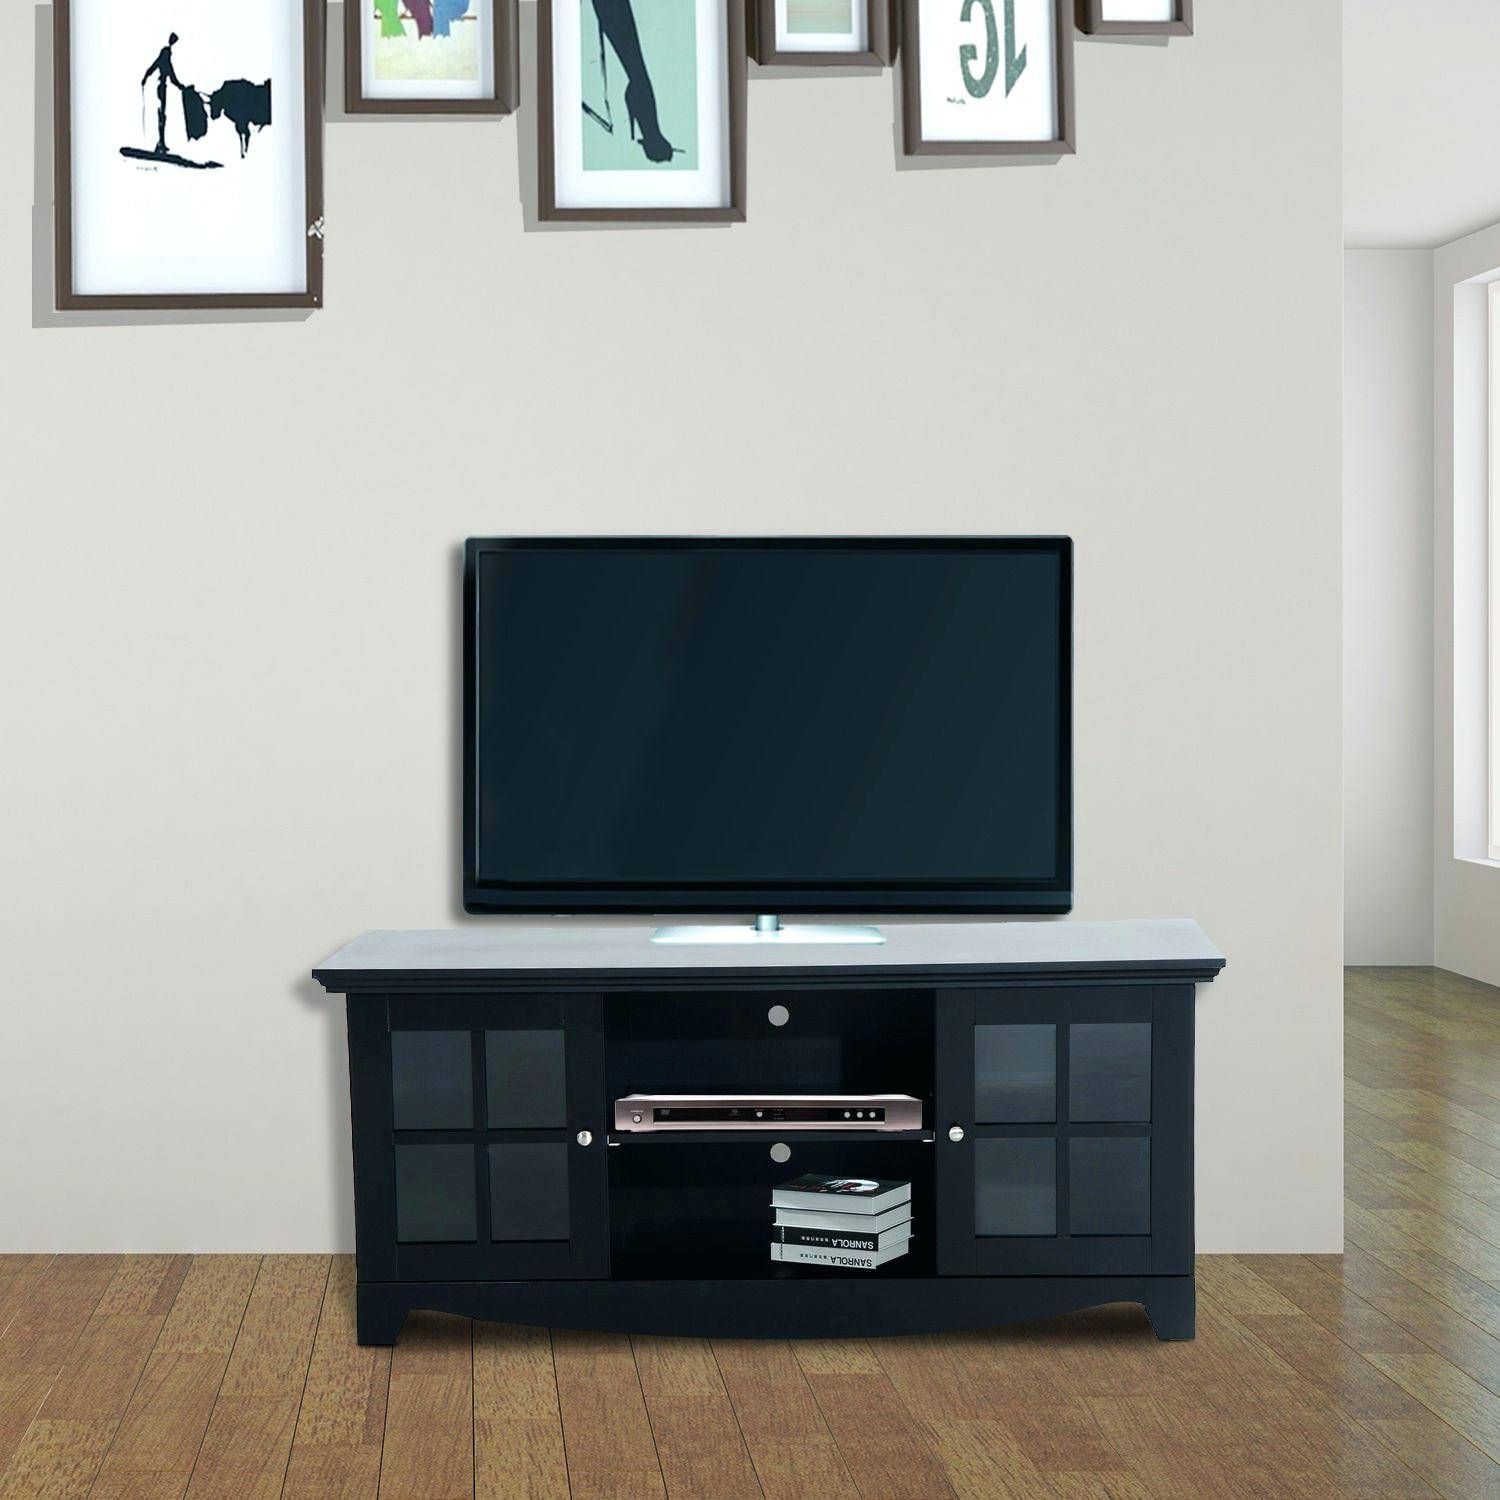 Tv Stand : Furniture Design Beautiful Chestnut Hill 56 In Tv Stand regarding 61 Inch Tv Stands (Image 10 of 15)